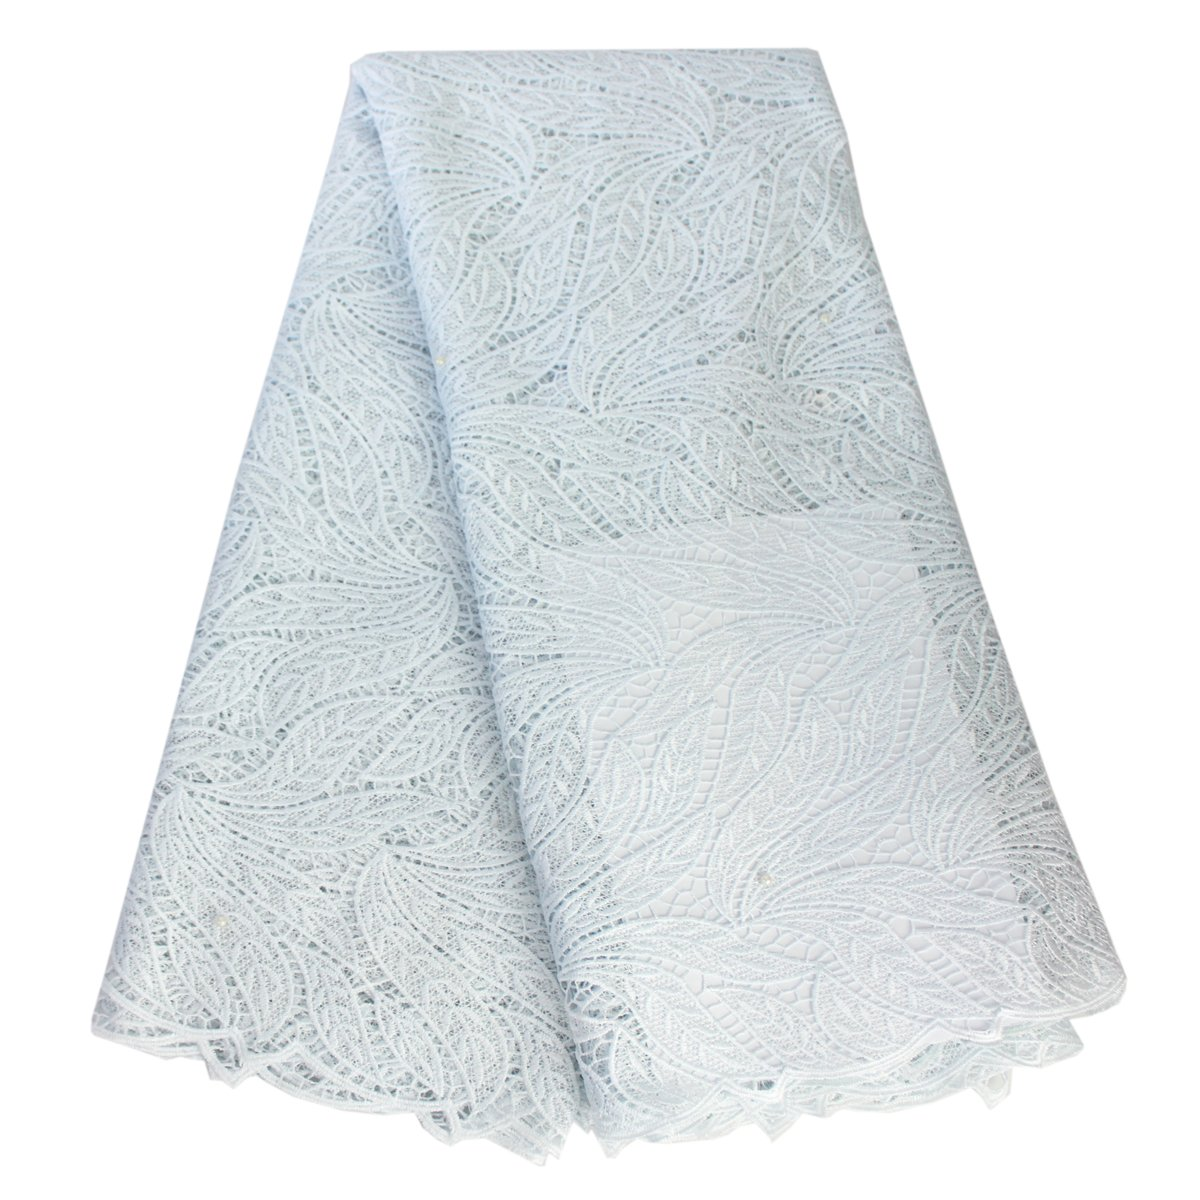 Aisunne 5 Yards African Lace Fabrics Classics Nigerian French Lace Fabric with Embroidered for Wedding Party Dresses (White) by Aisunne